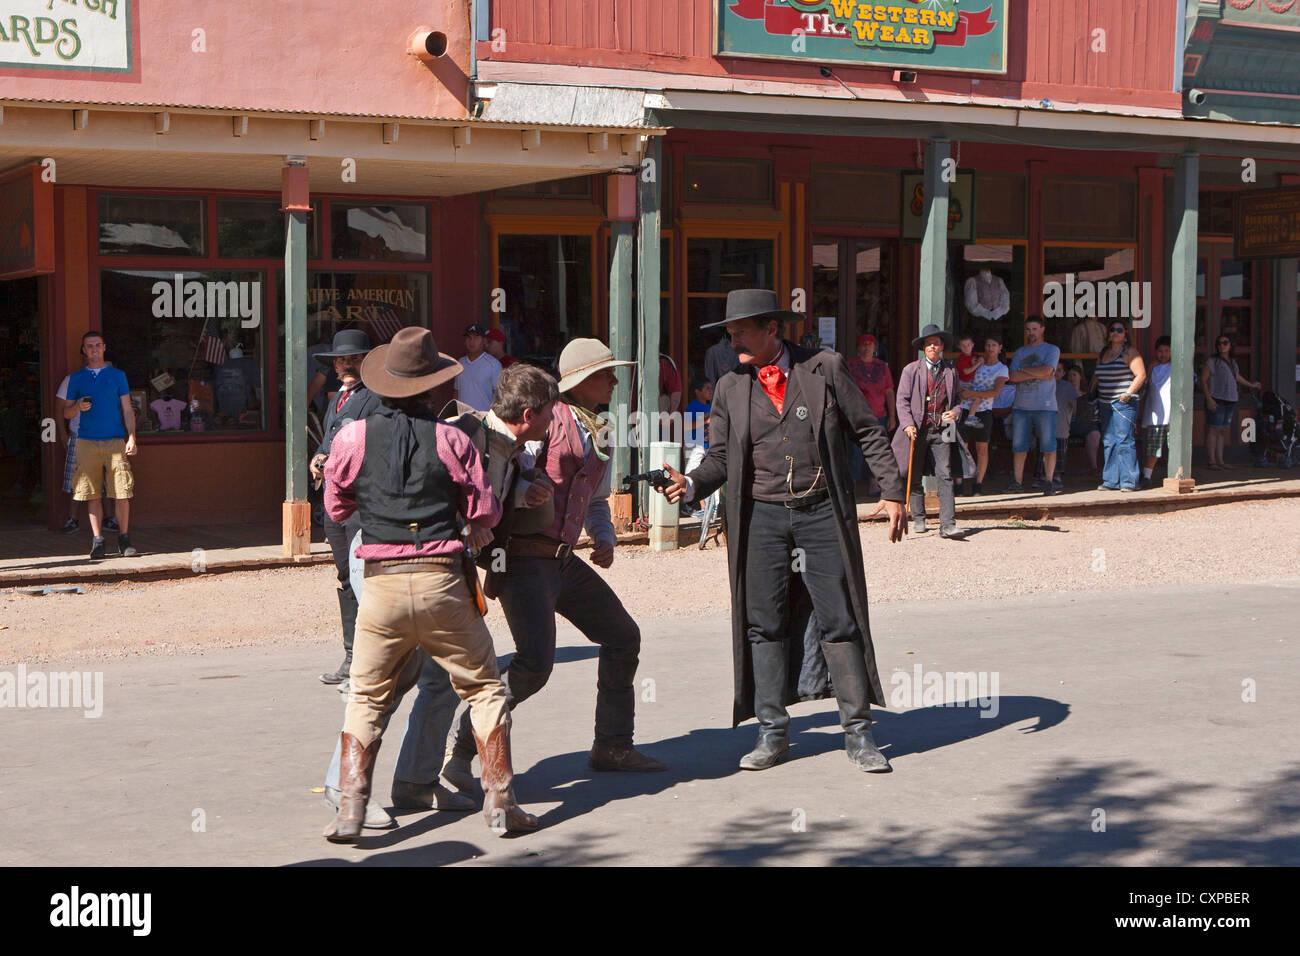 Wyatt Earp (right) reenactment, Allen Street, Tombstone, Arizona, United States of America - Stock Image